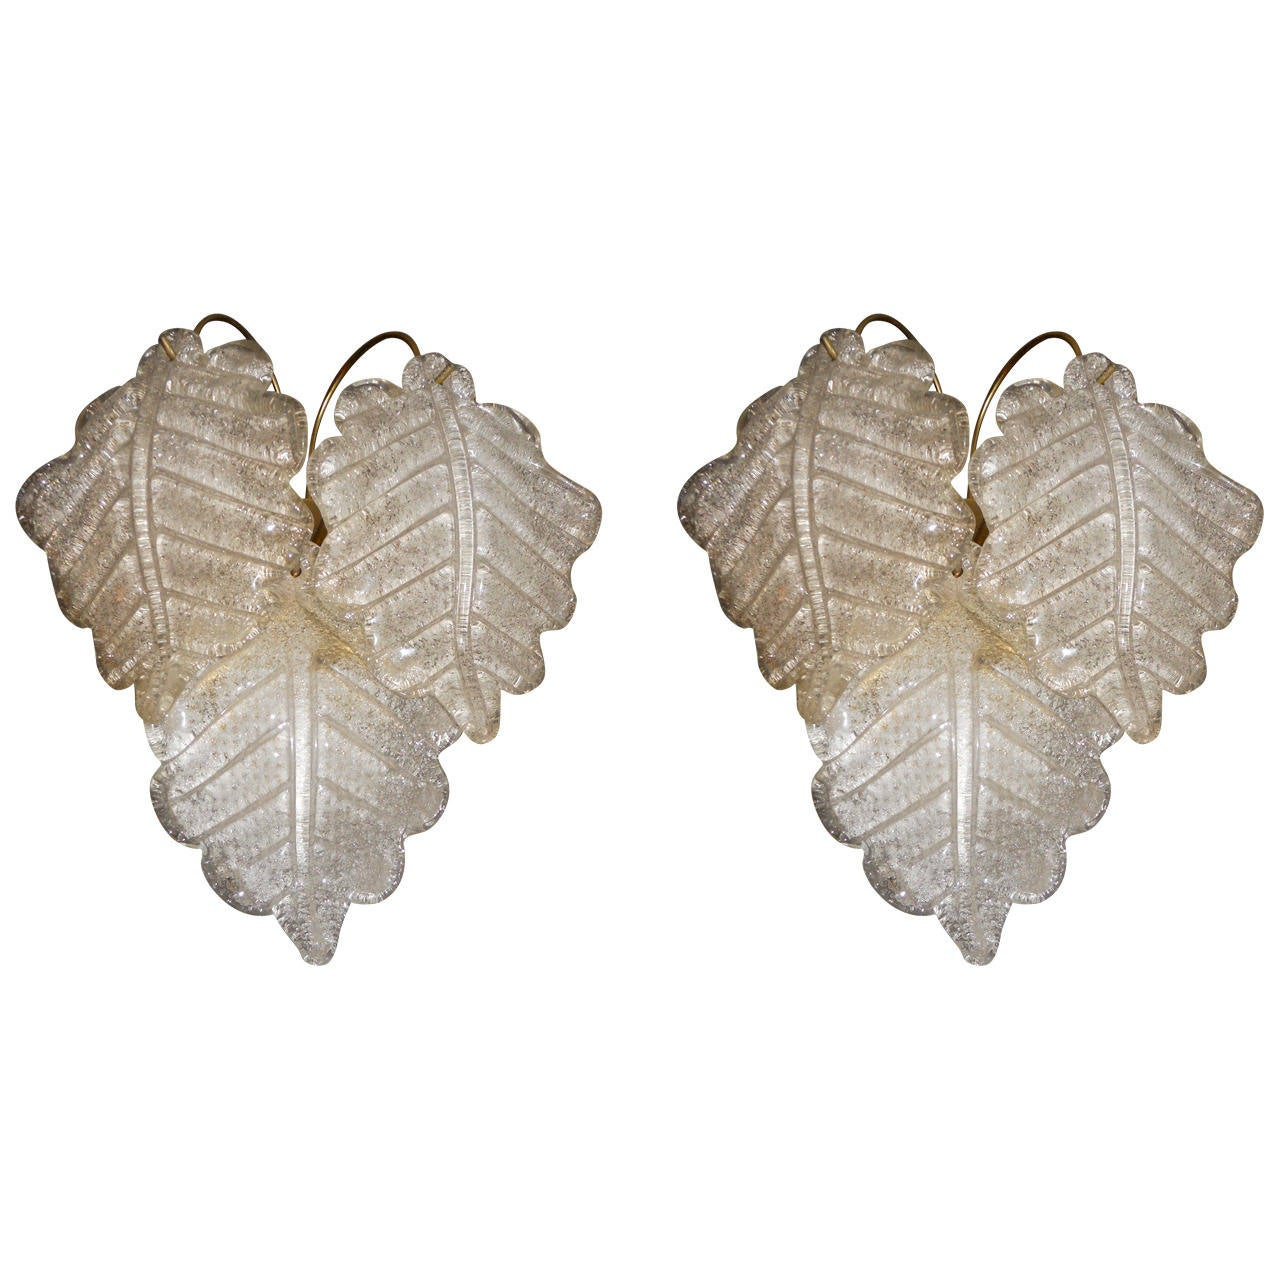 Wall Sconces With Leaves : Charming Pair of Frosted Leaf Wall Sconces at 1stdibs